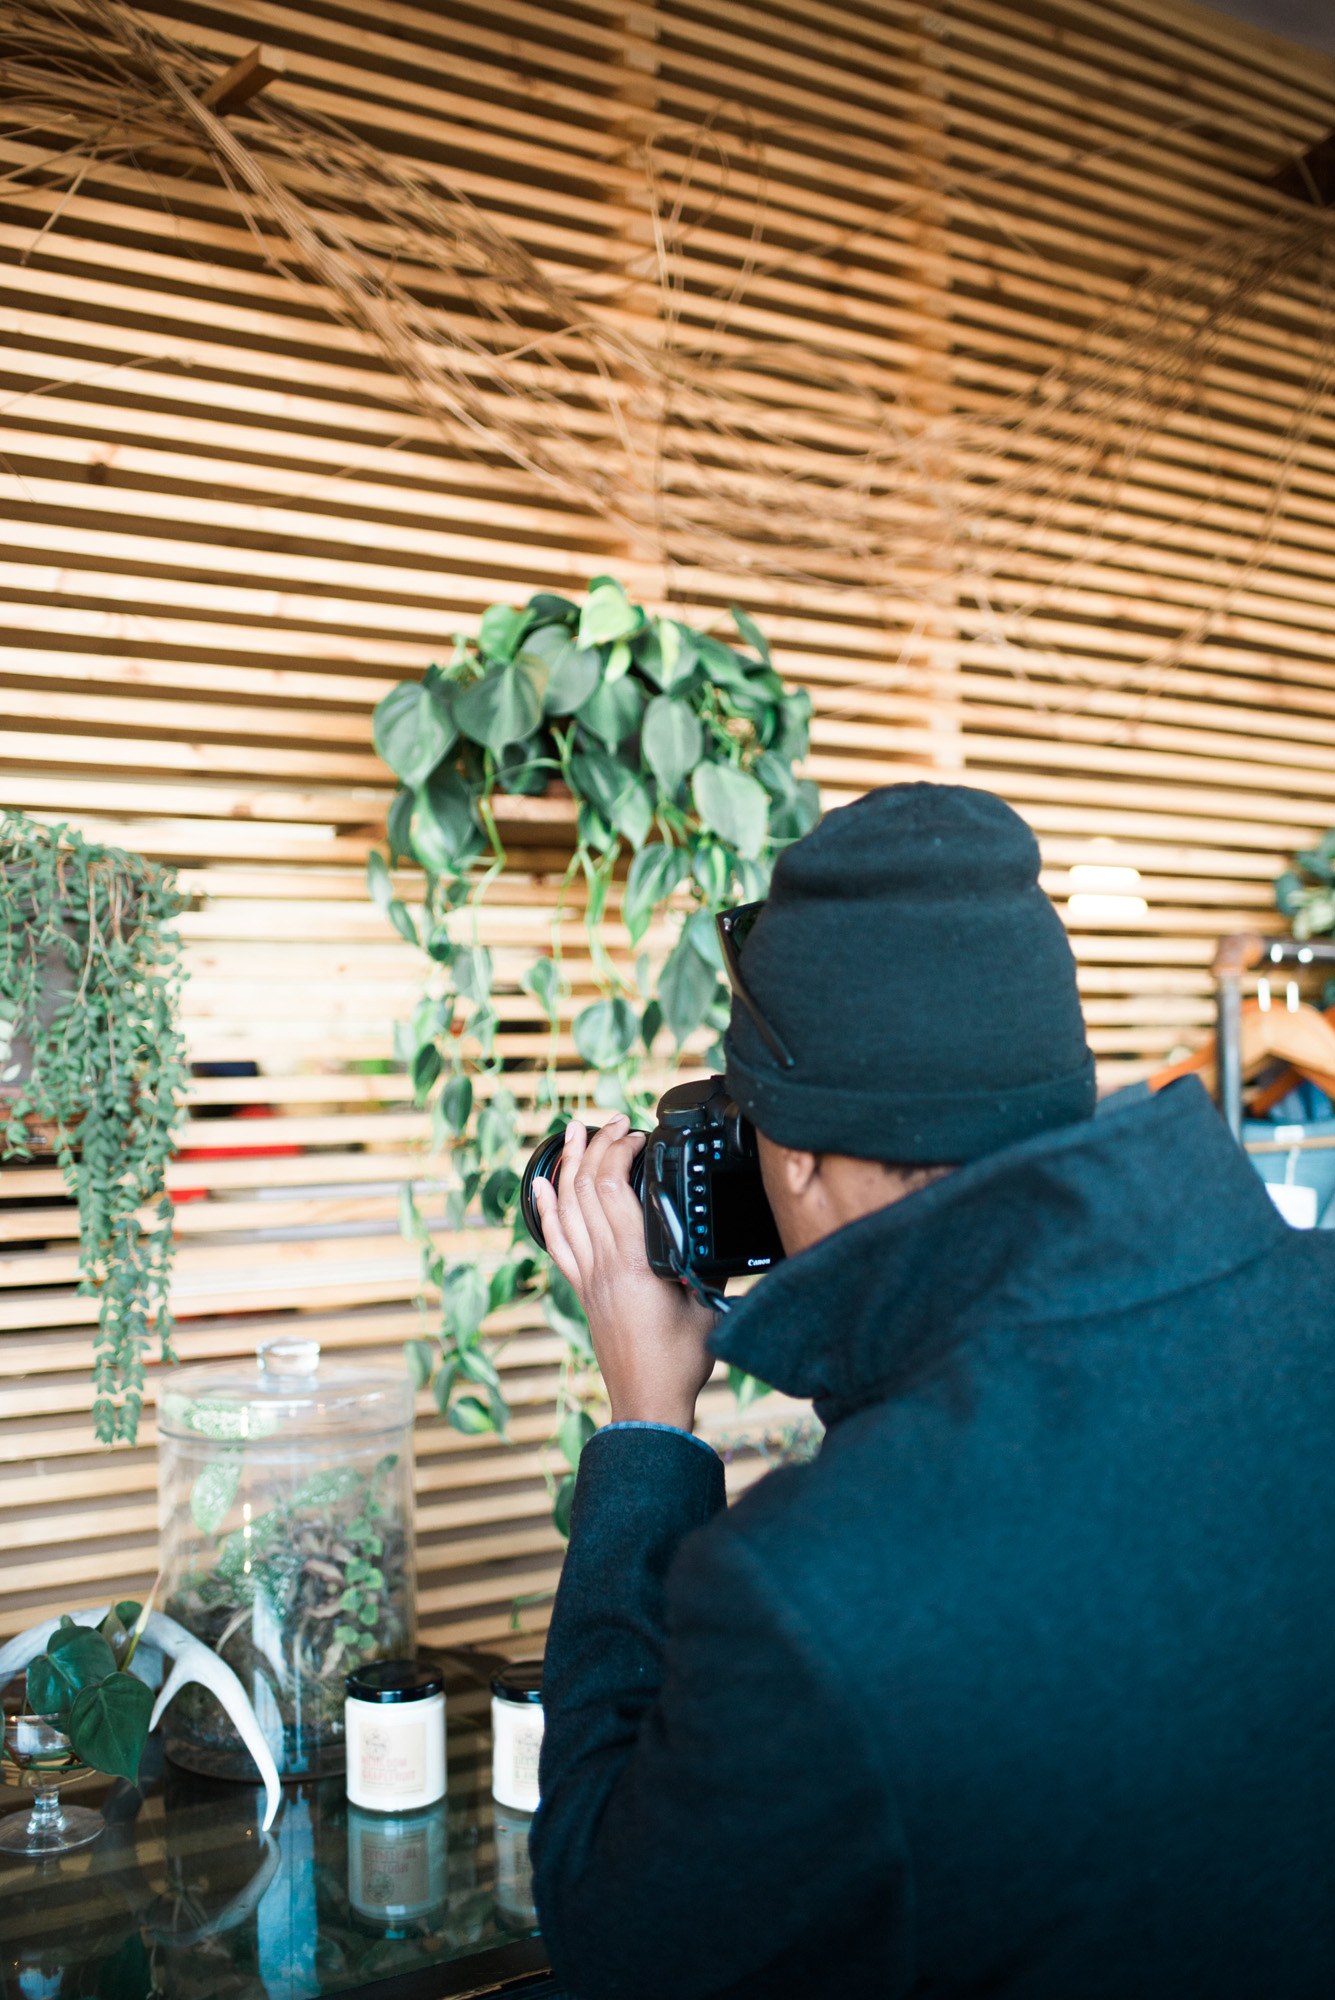 Sarah Hooker Photography | West Asheville Instameet at The Drygoods Shop